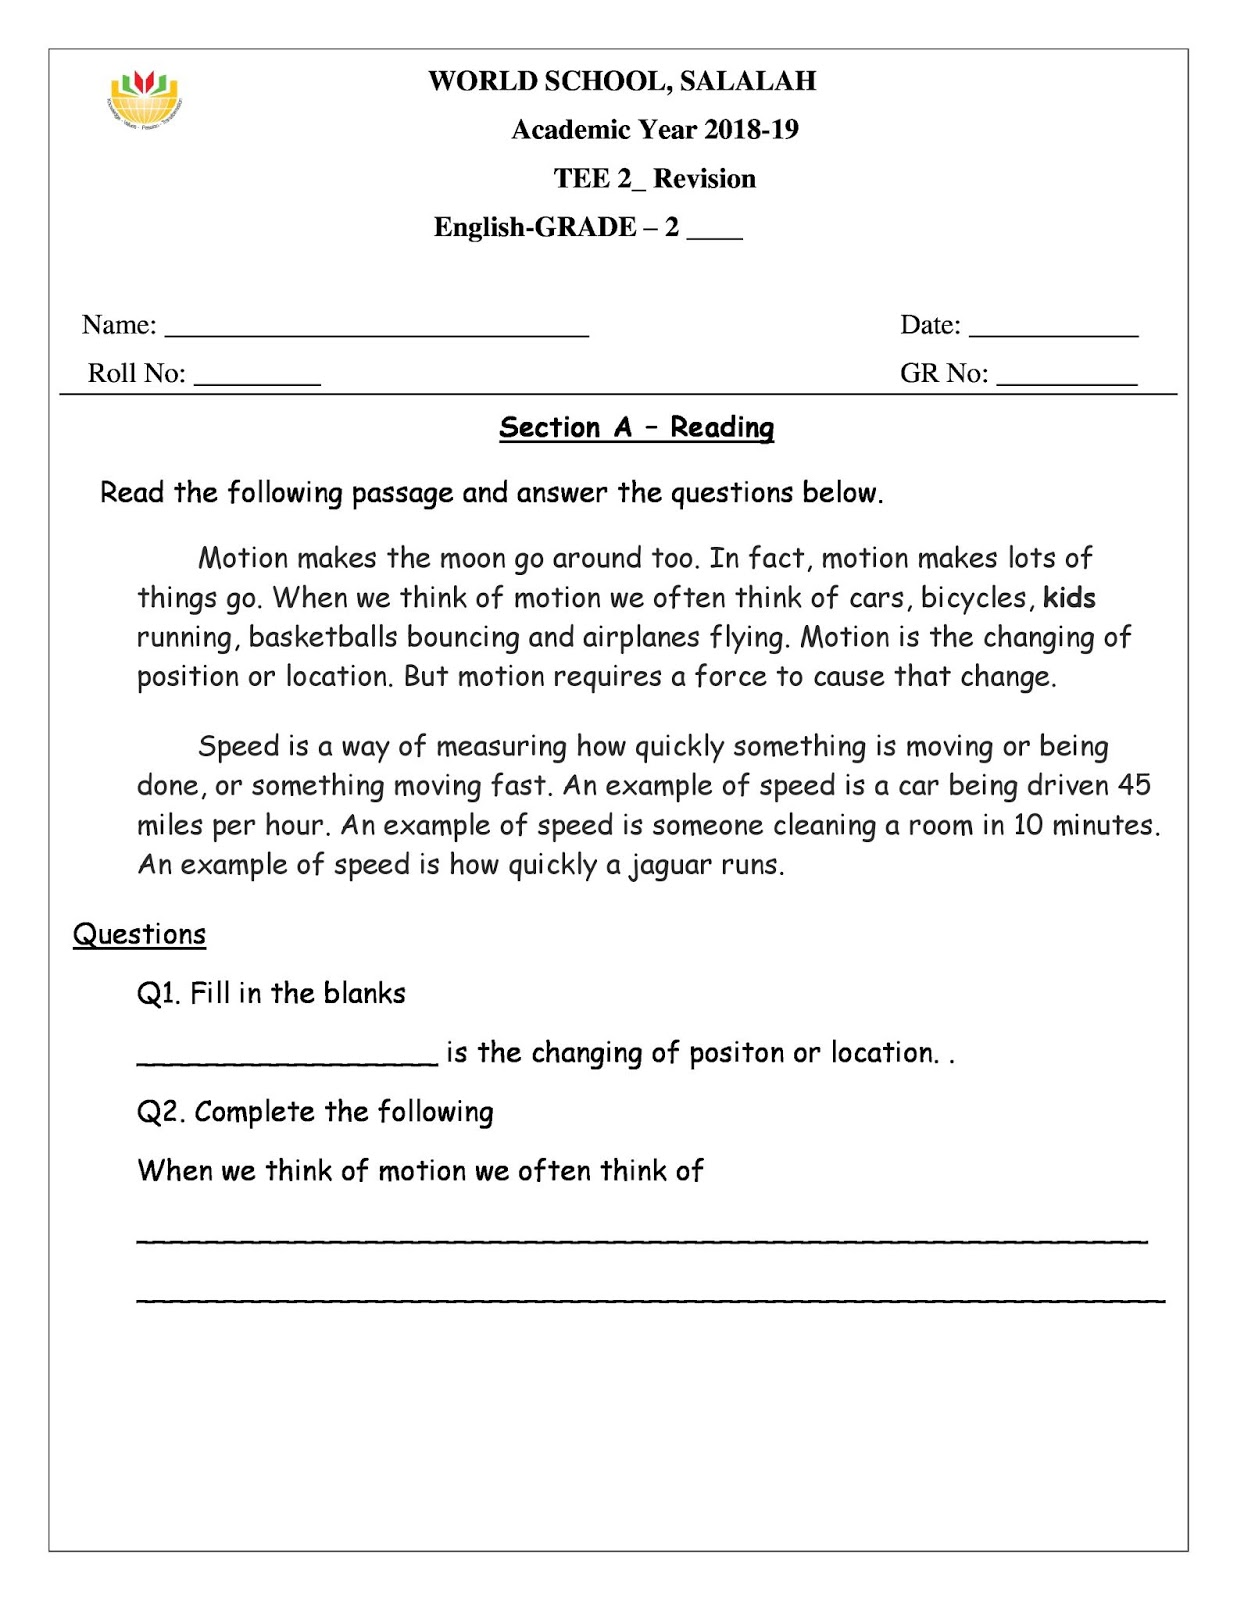 small resolution of Revision Worksheets for Grade 2 as on 12-05-2019   WORLD SCHOOL OMAN